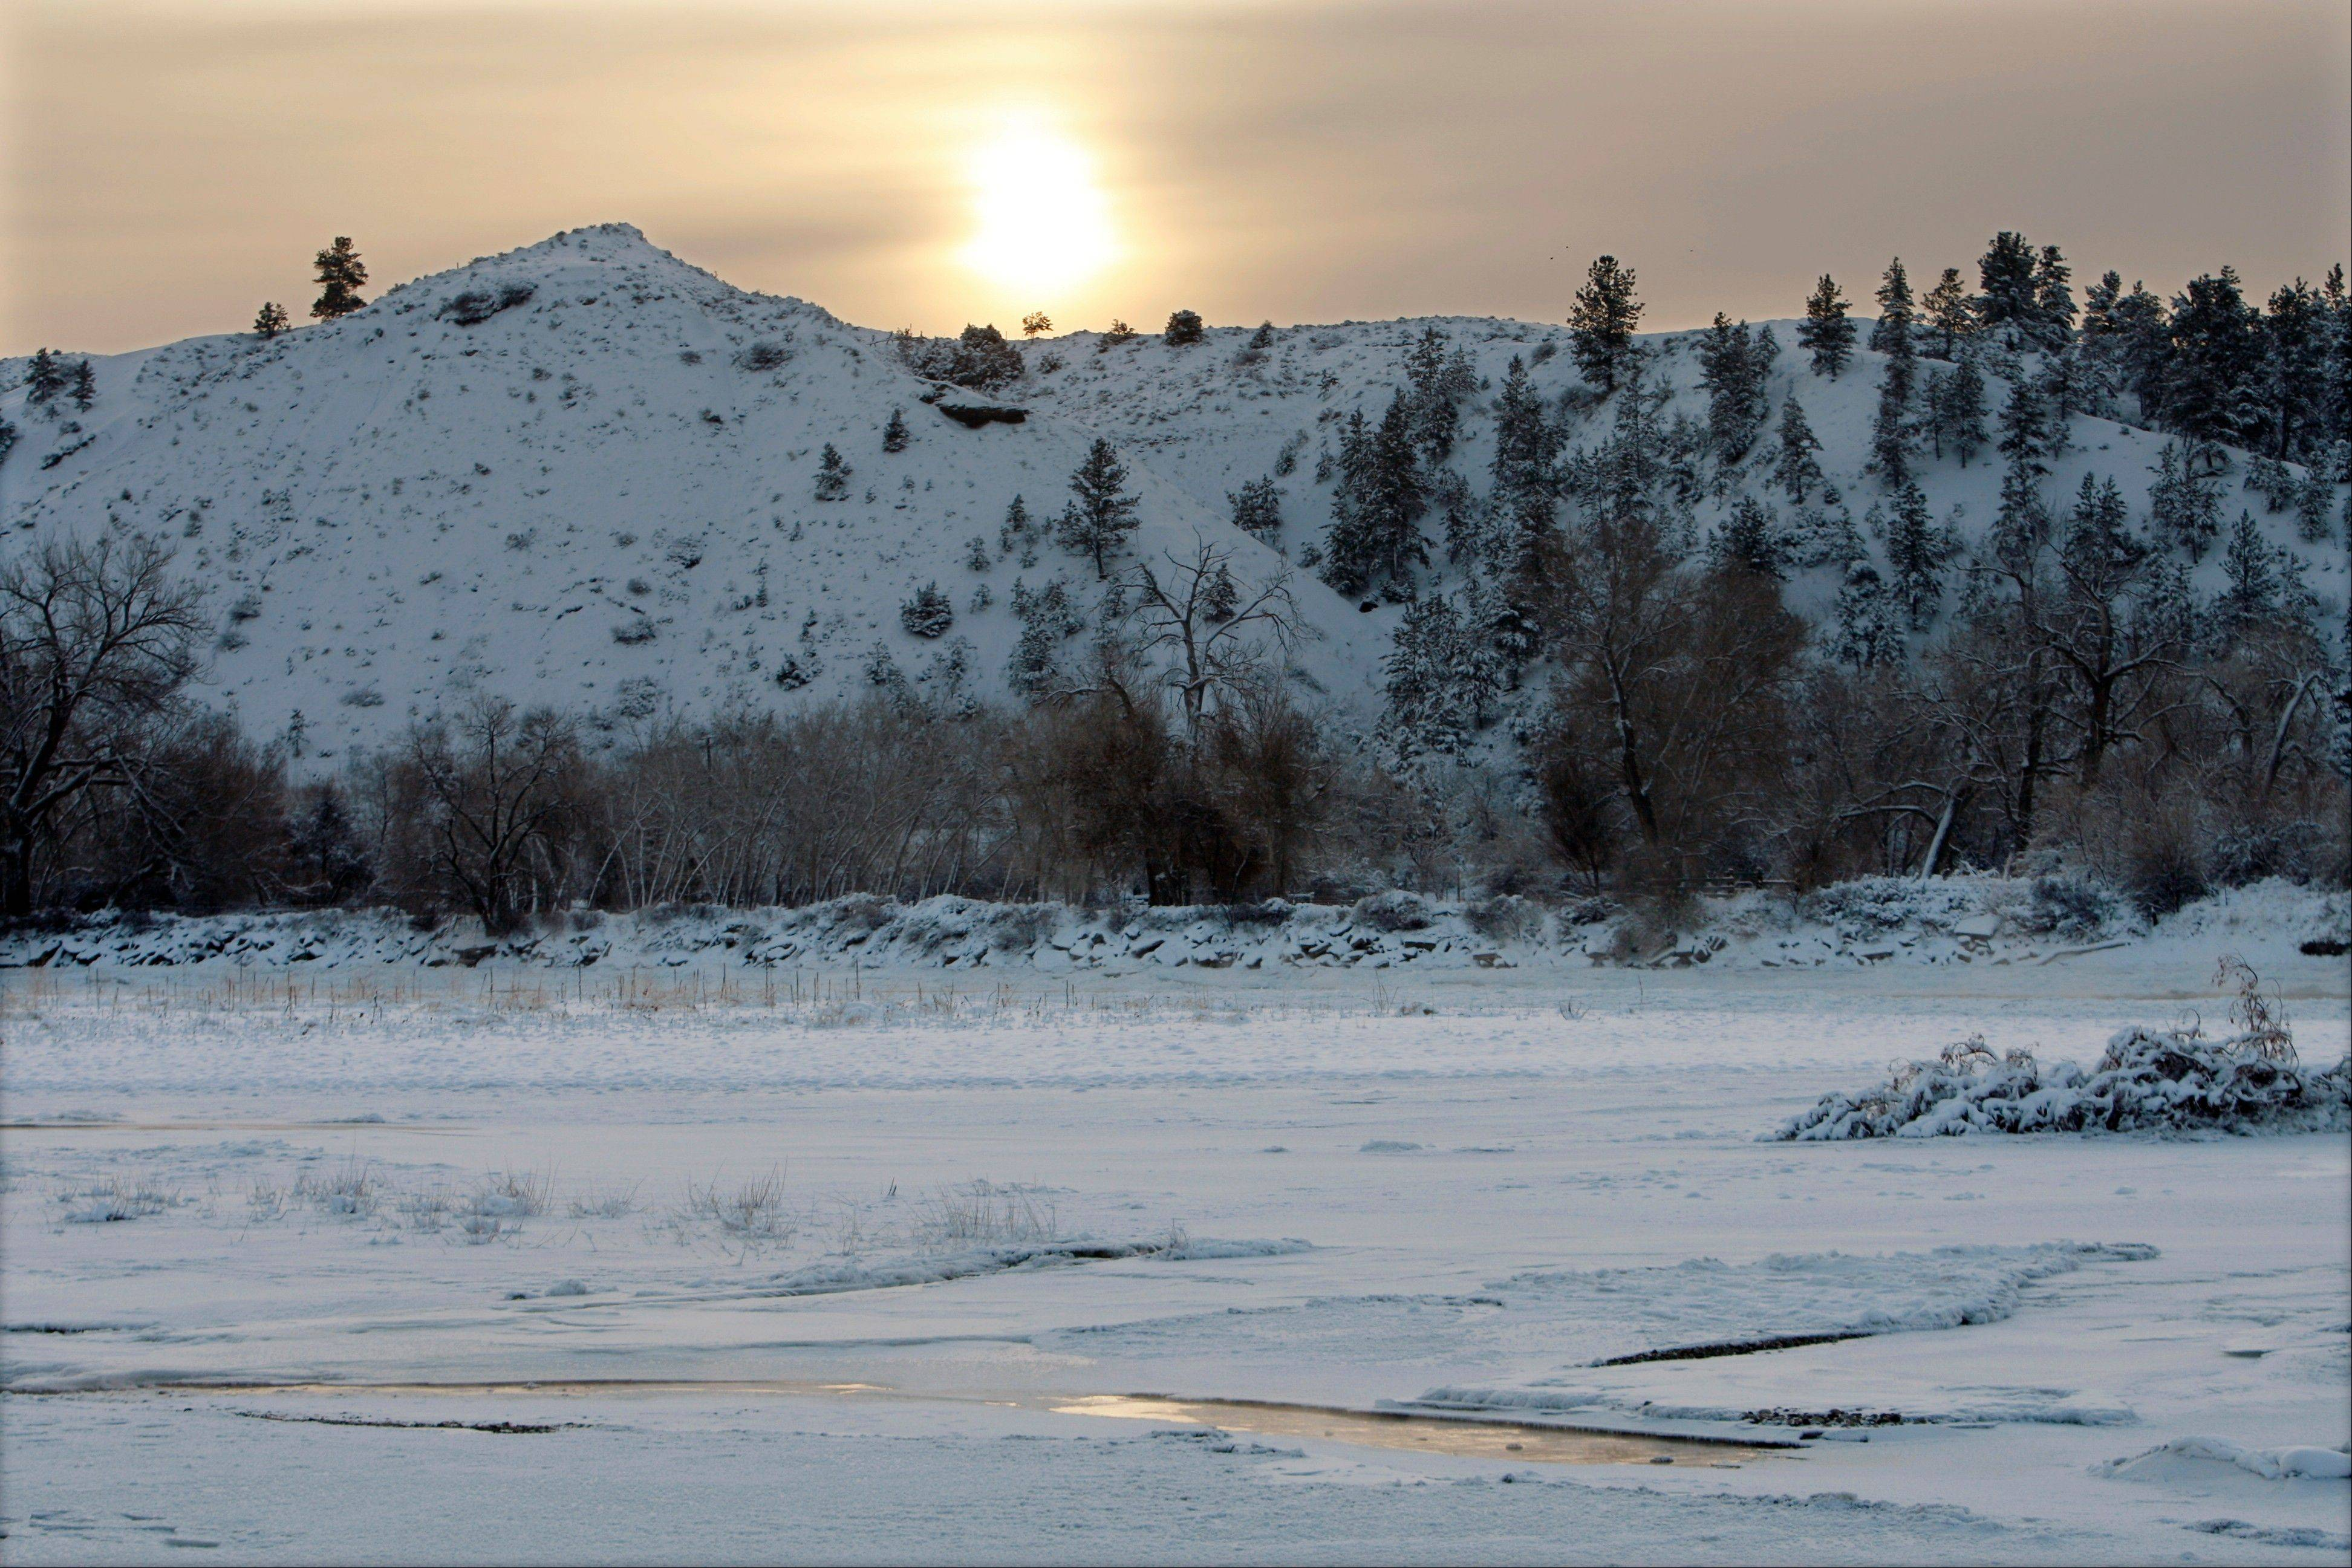 The sun rises Saturday over the hills south of the Yellowstone River in Billings, Mont. as the temperatures hover around 20 degrees below zero.